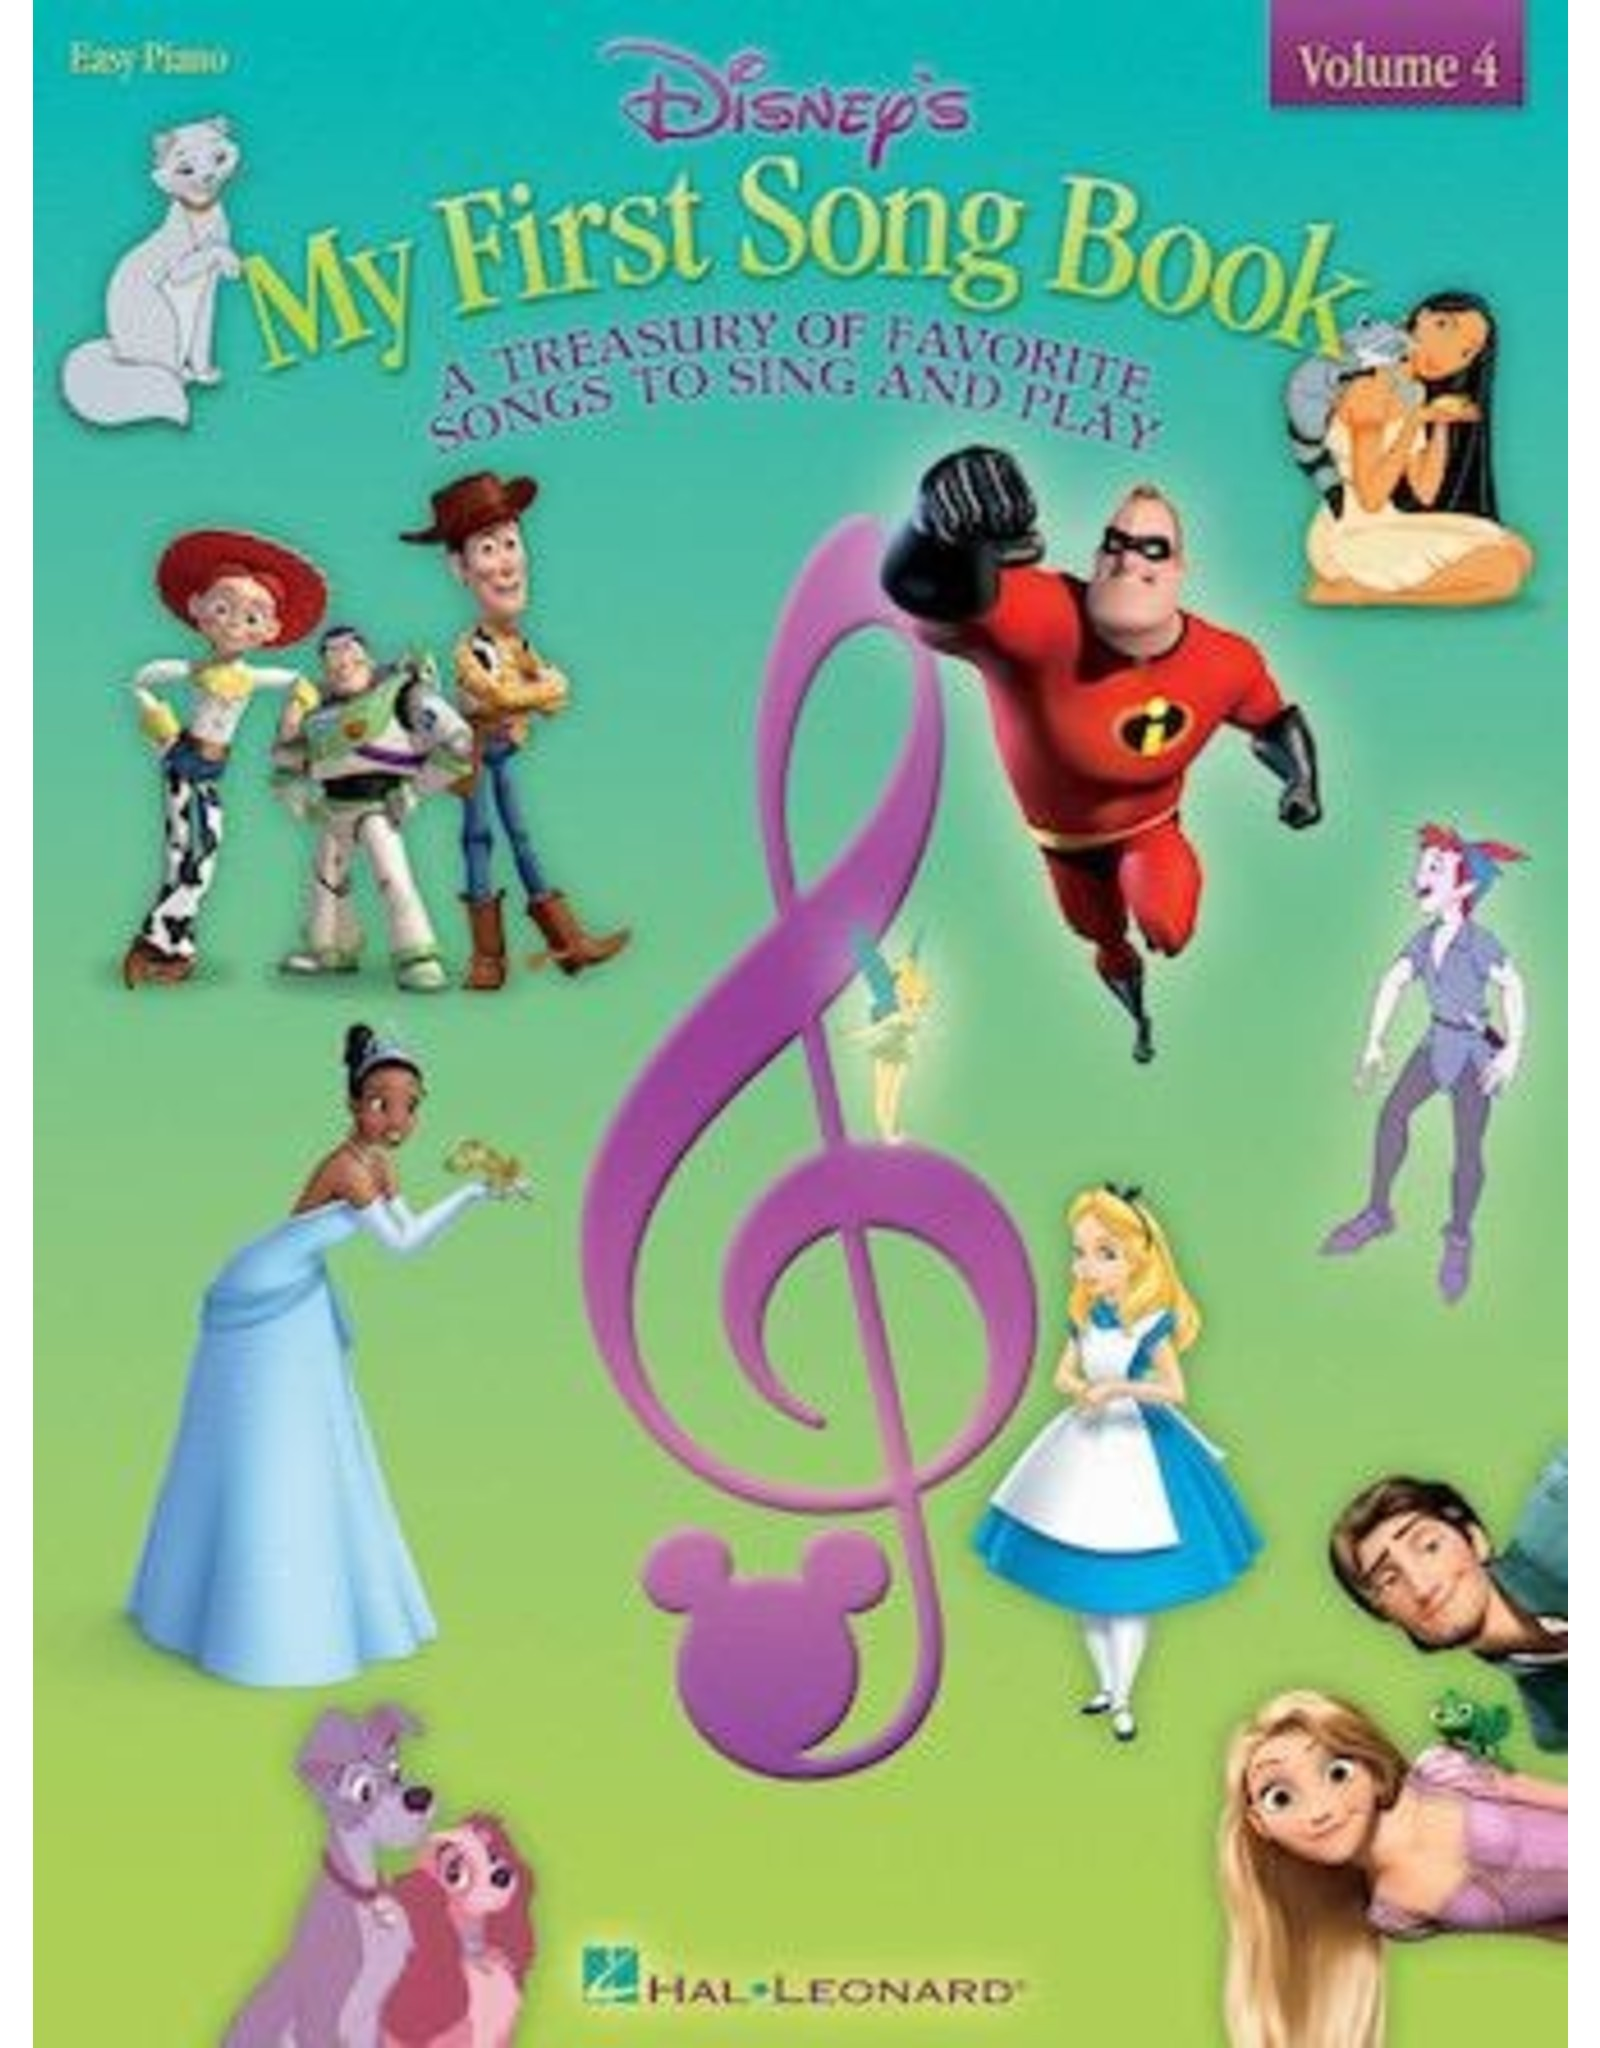 Hal Leonard Disney's My First Songbook Volume 4 Easy Piano